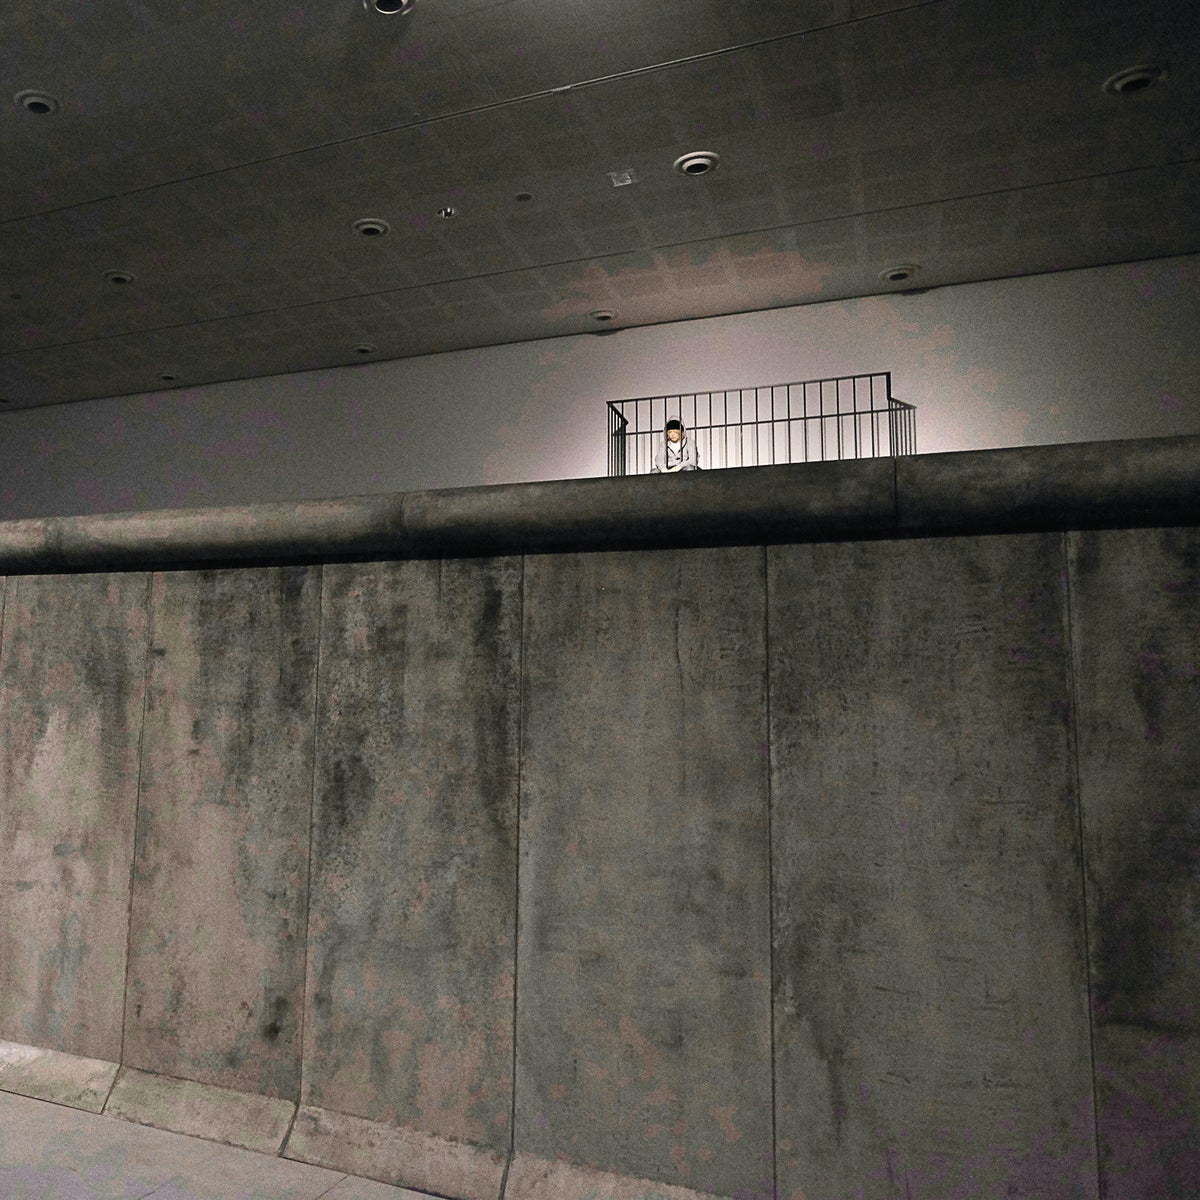 A replica of the Berlin Wall in an installation by Michael Elmgreen and Ingar Dragset at the Tel Aviv Museum of Art.